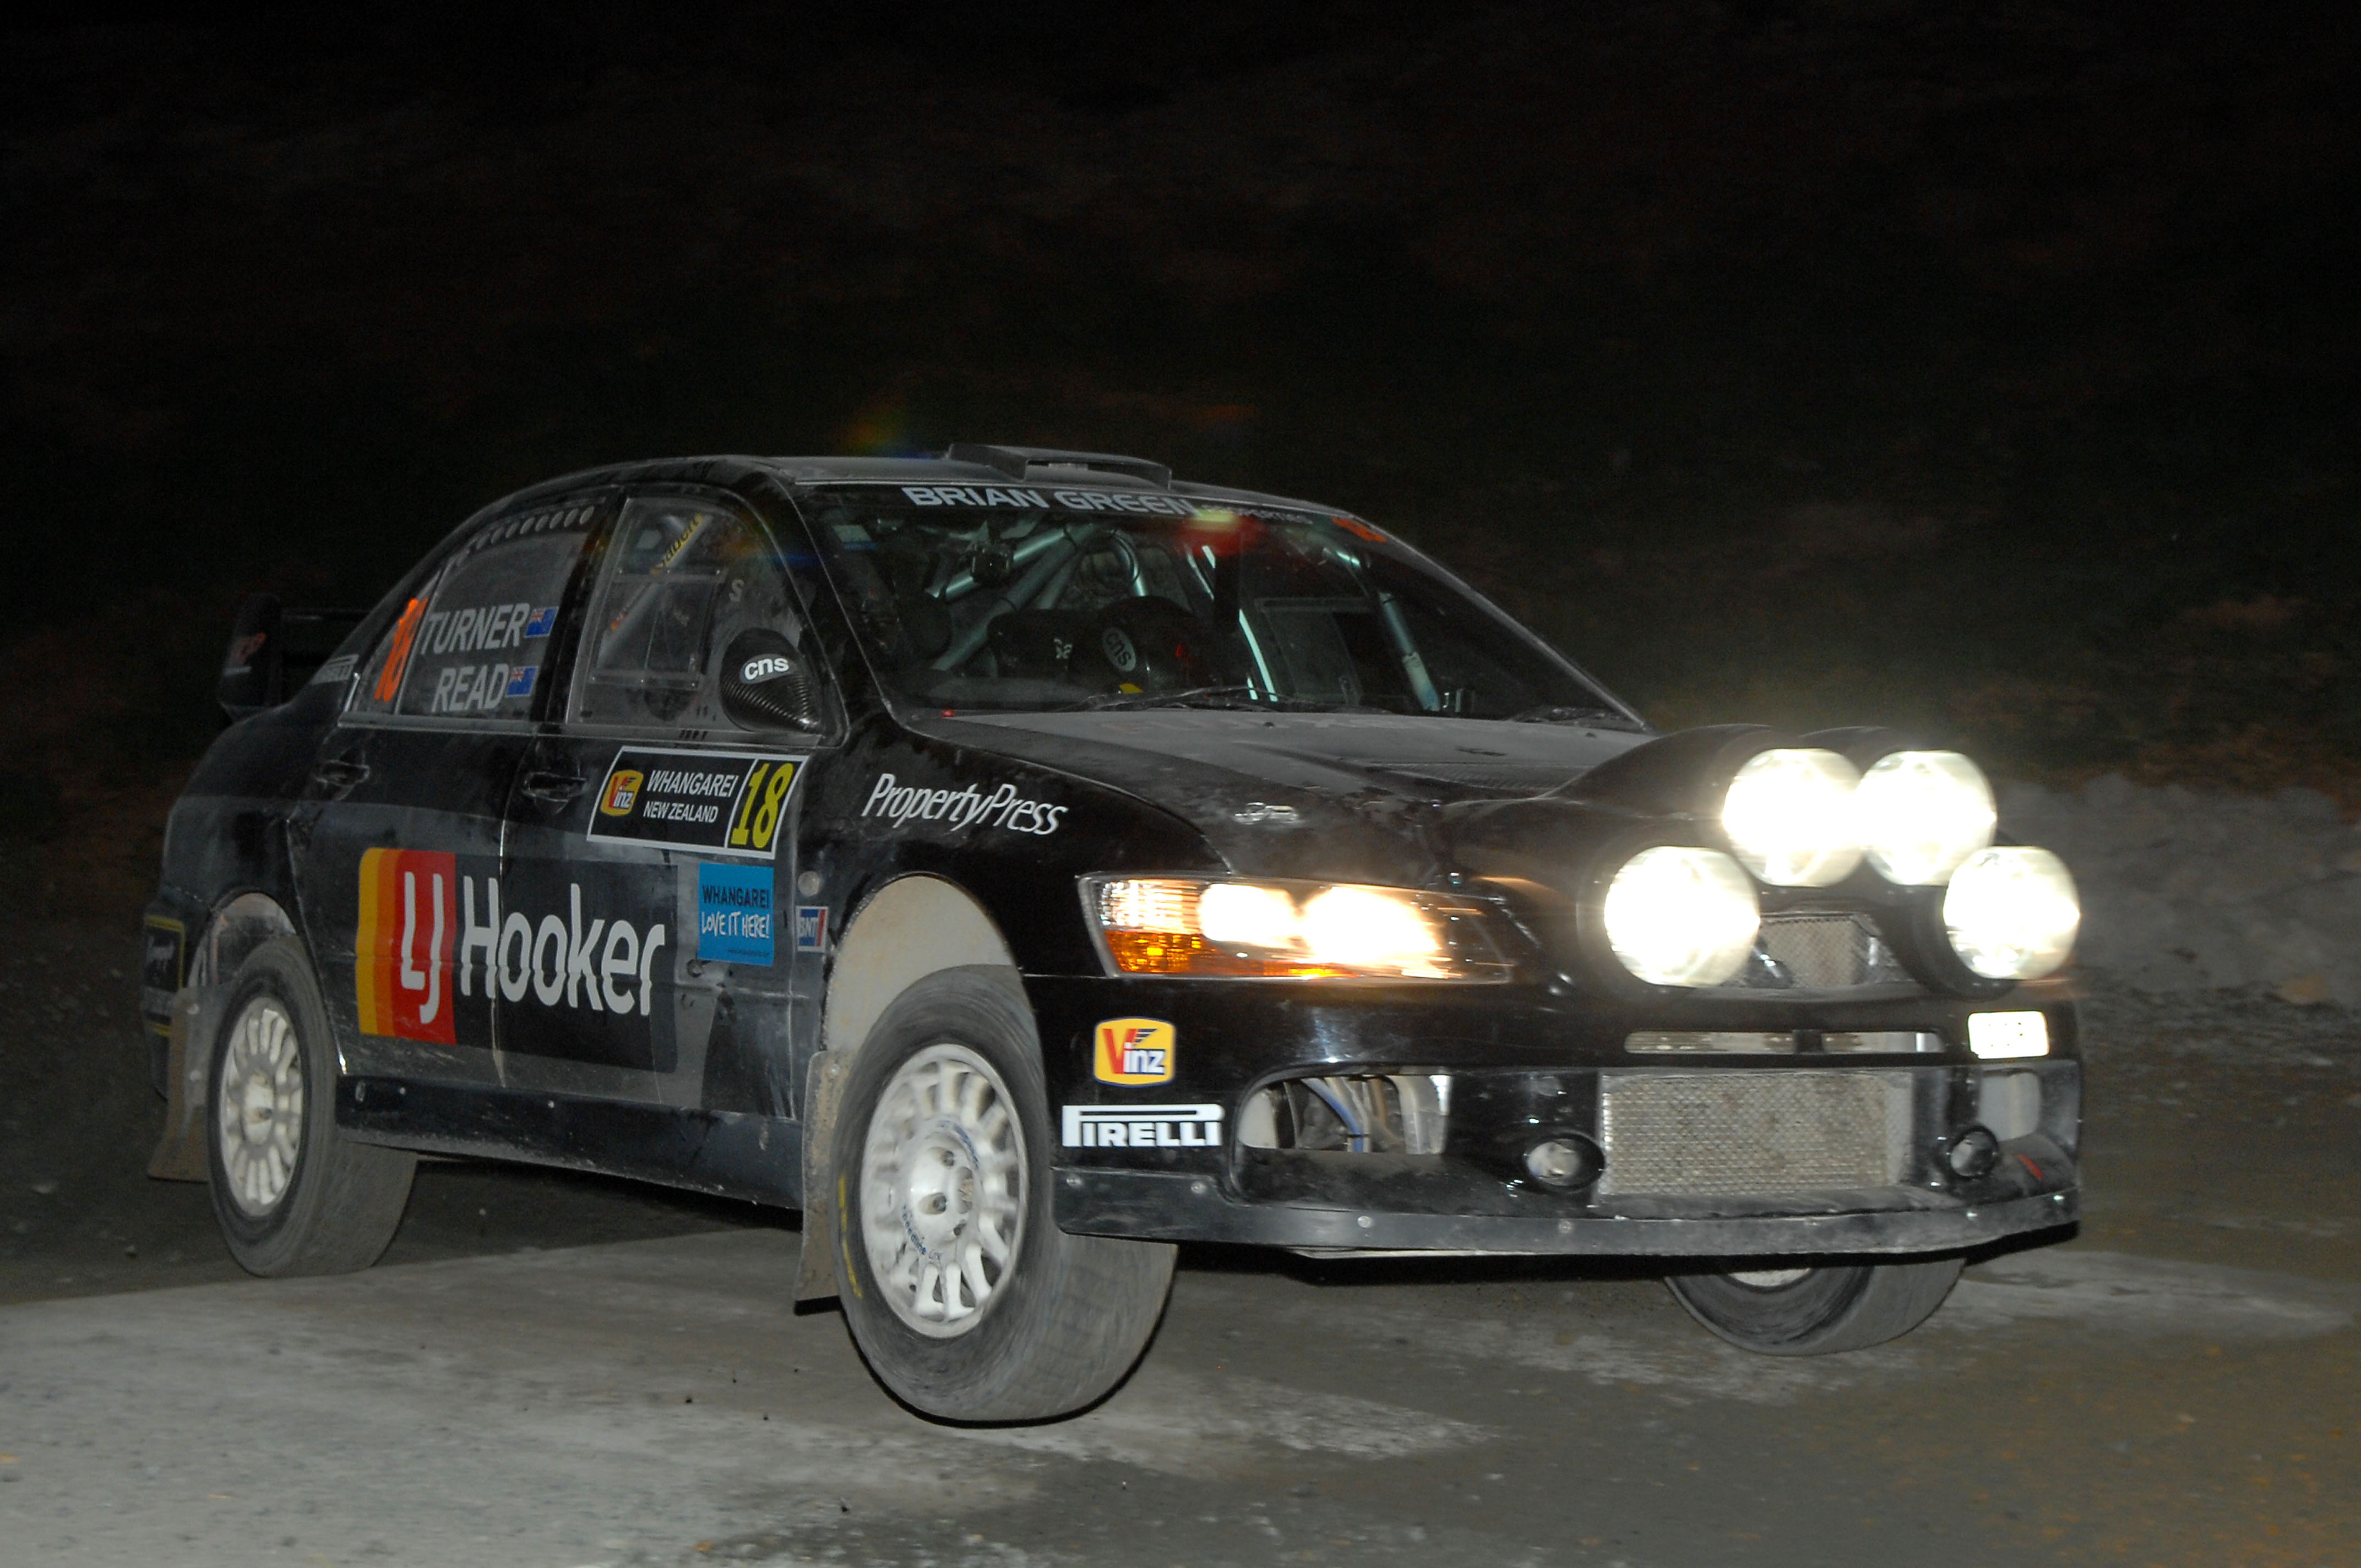 Night of rally action to start International event